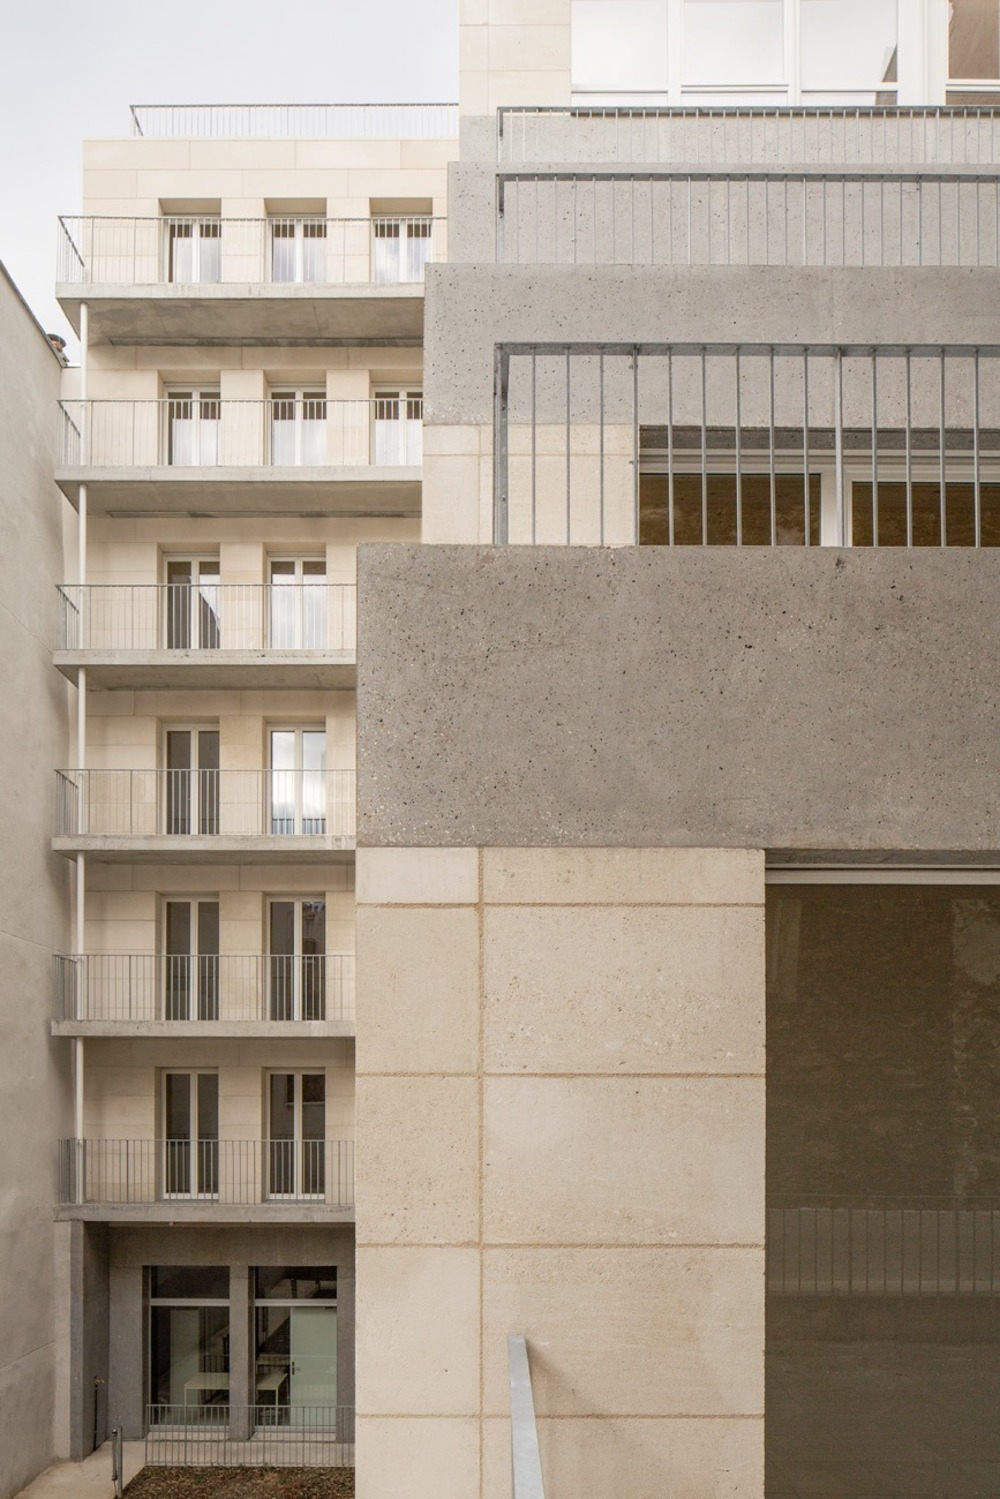 Stone social housing project by Barrault Pressacco